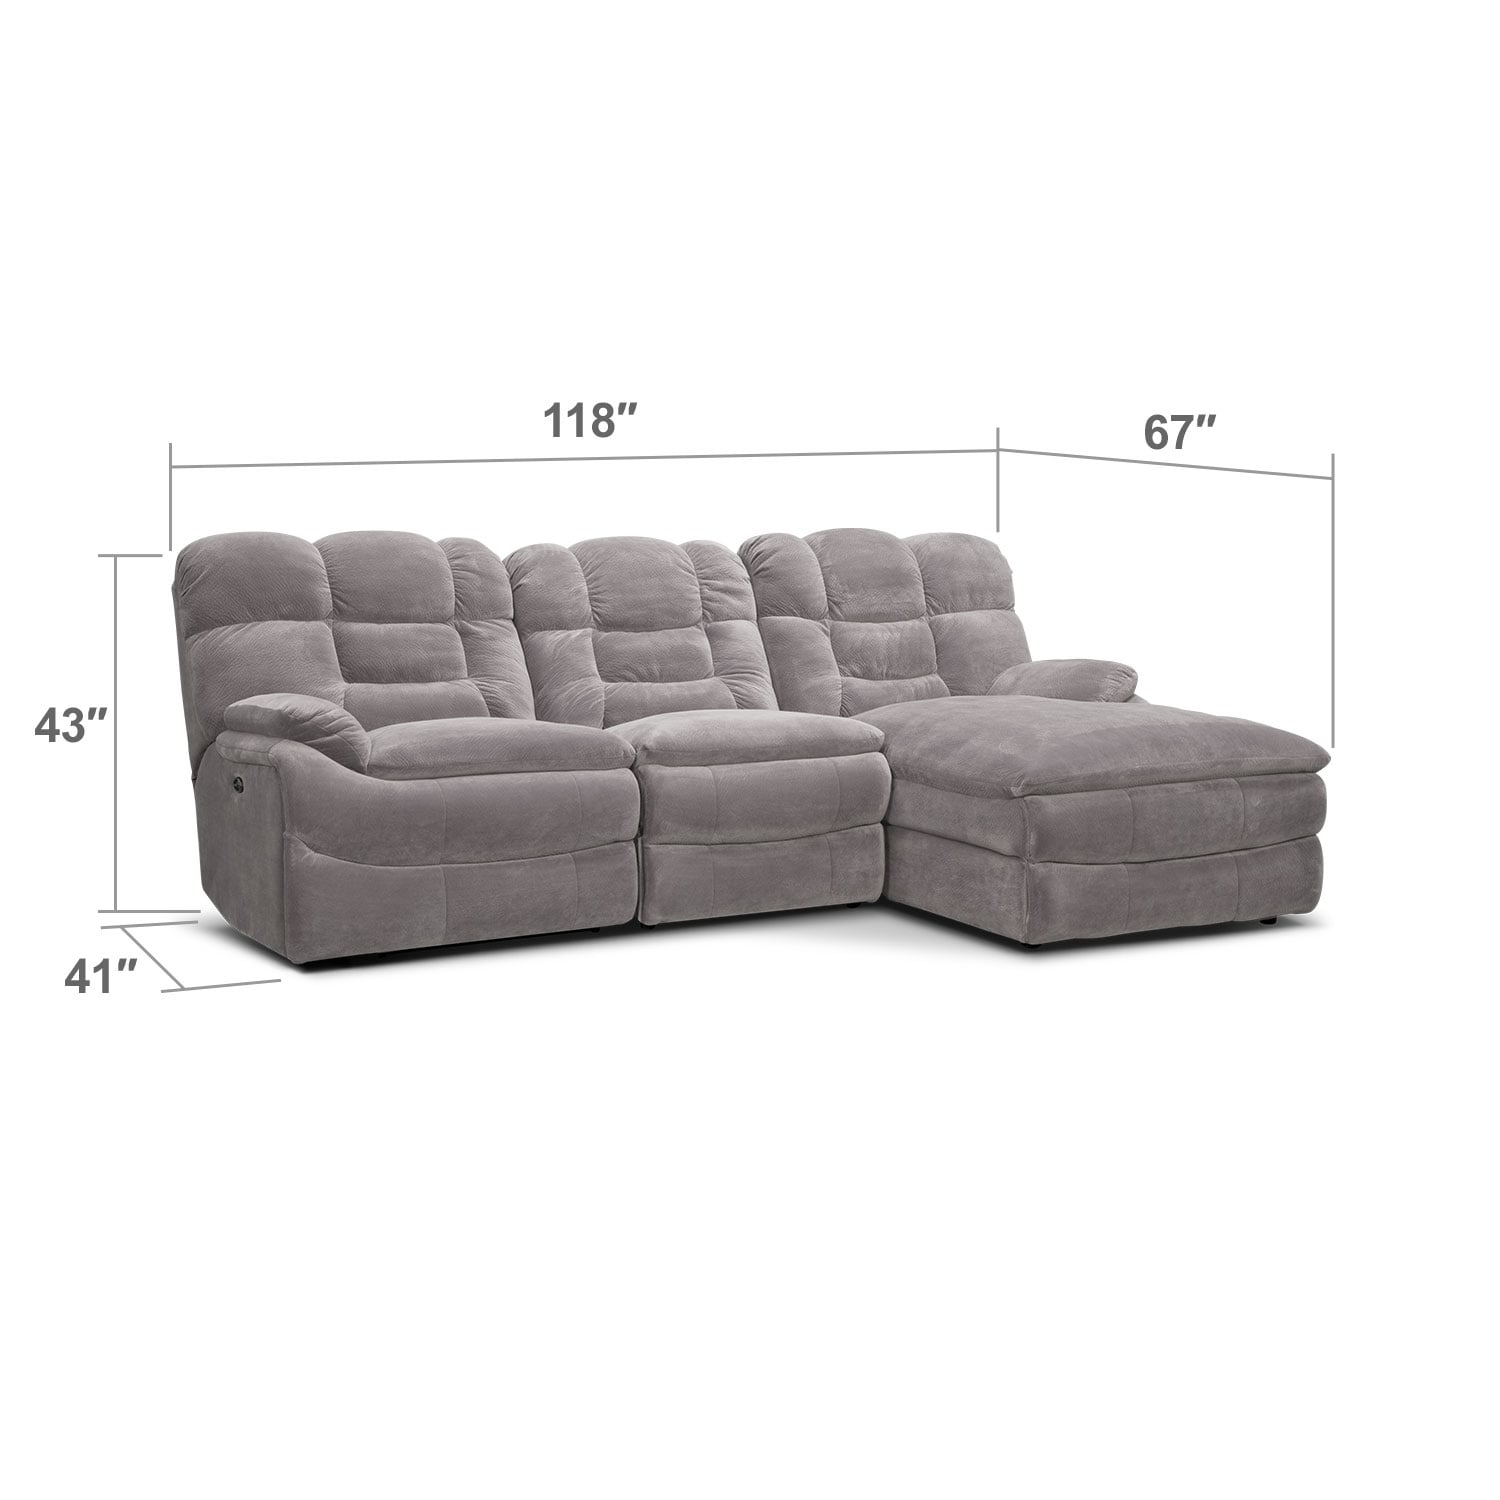 Living Room Furniture - Big Softie 3-Piece Power Reclining Sectional with Right-Facing Chaise - Gray